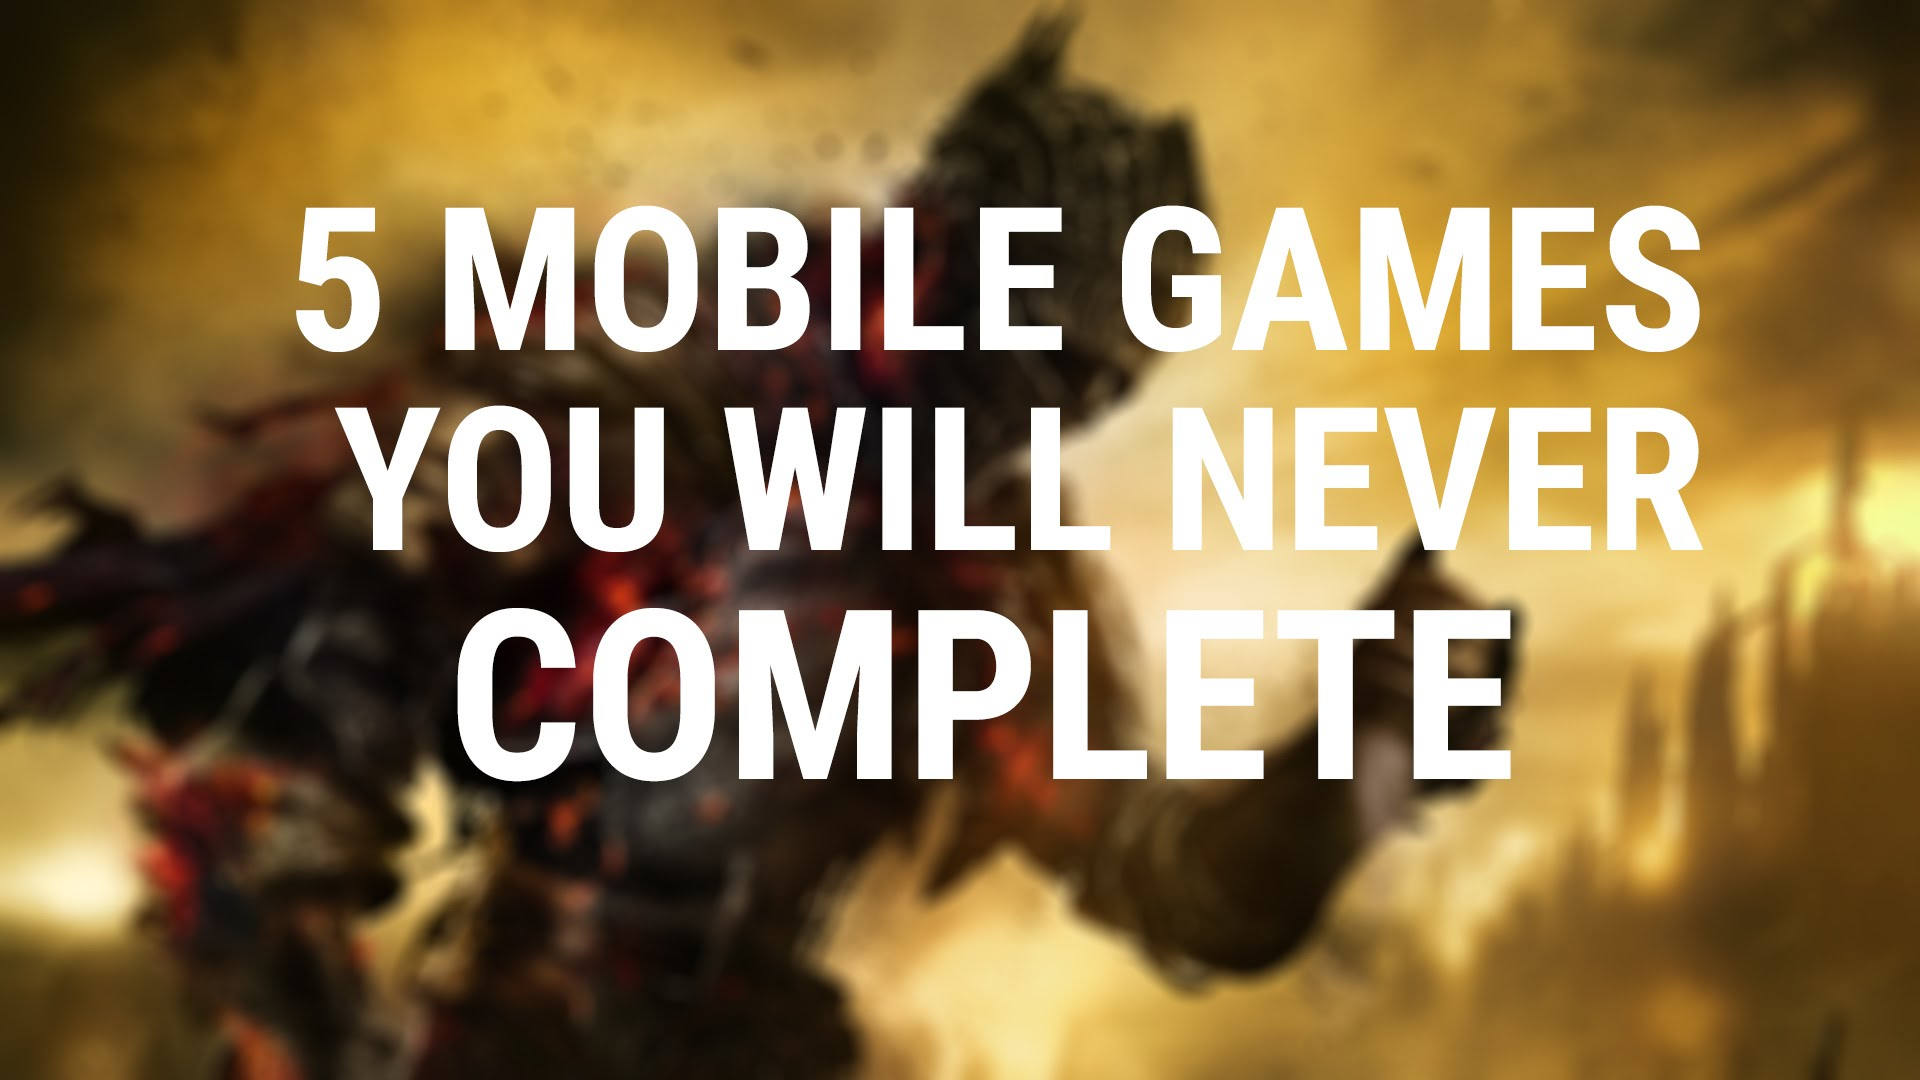 Forget Dark Souls 3, here are 5 mobile games you'll NEVER complete